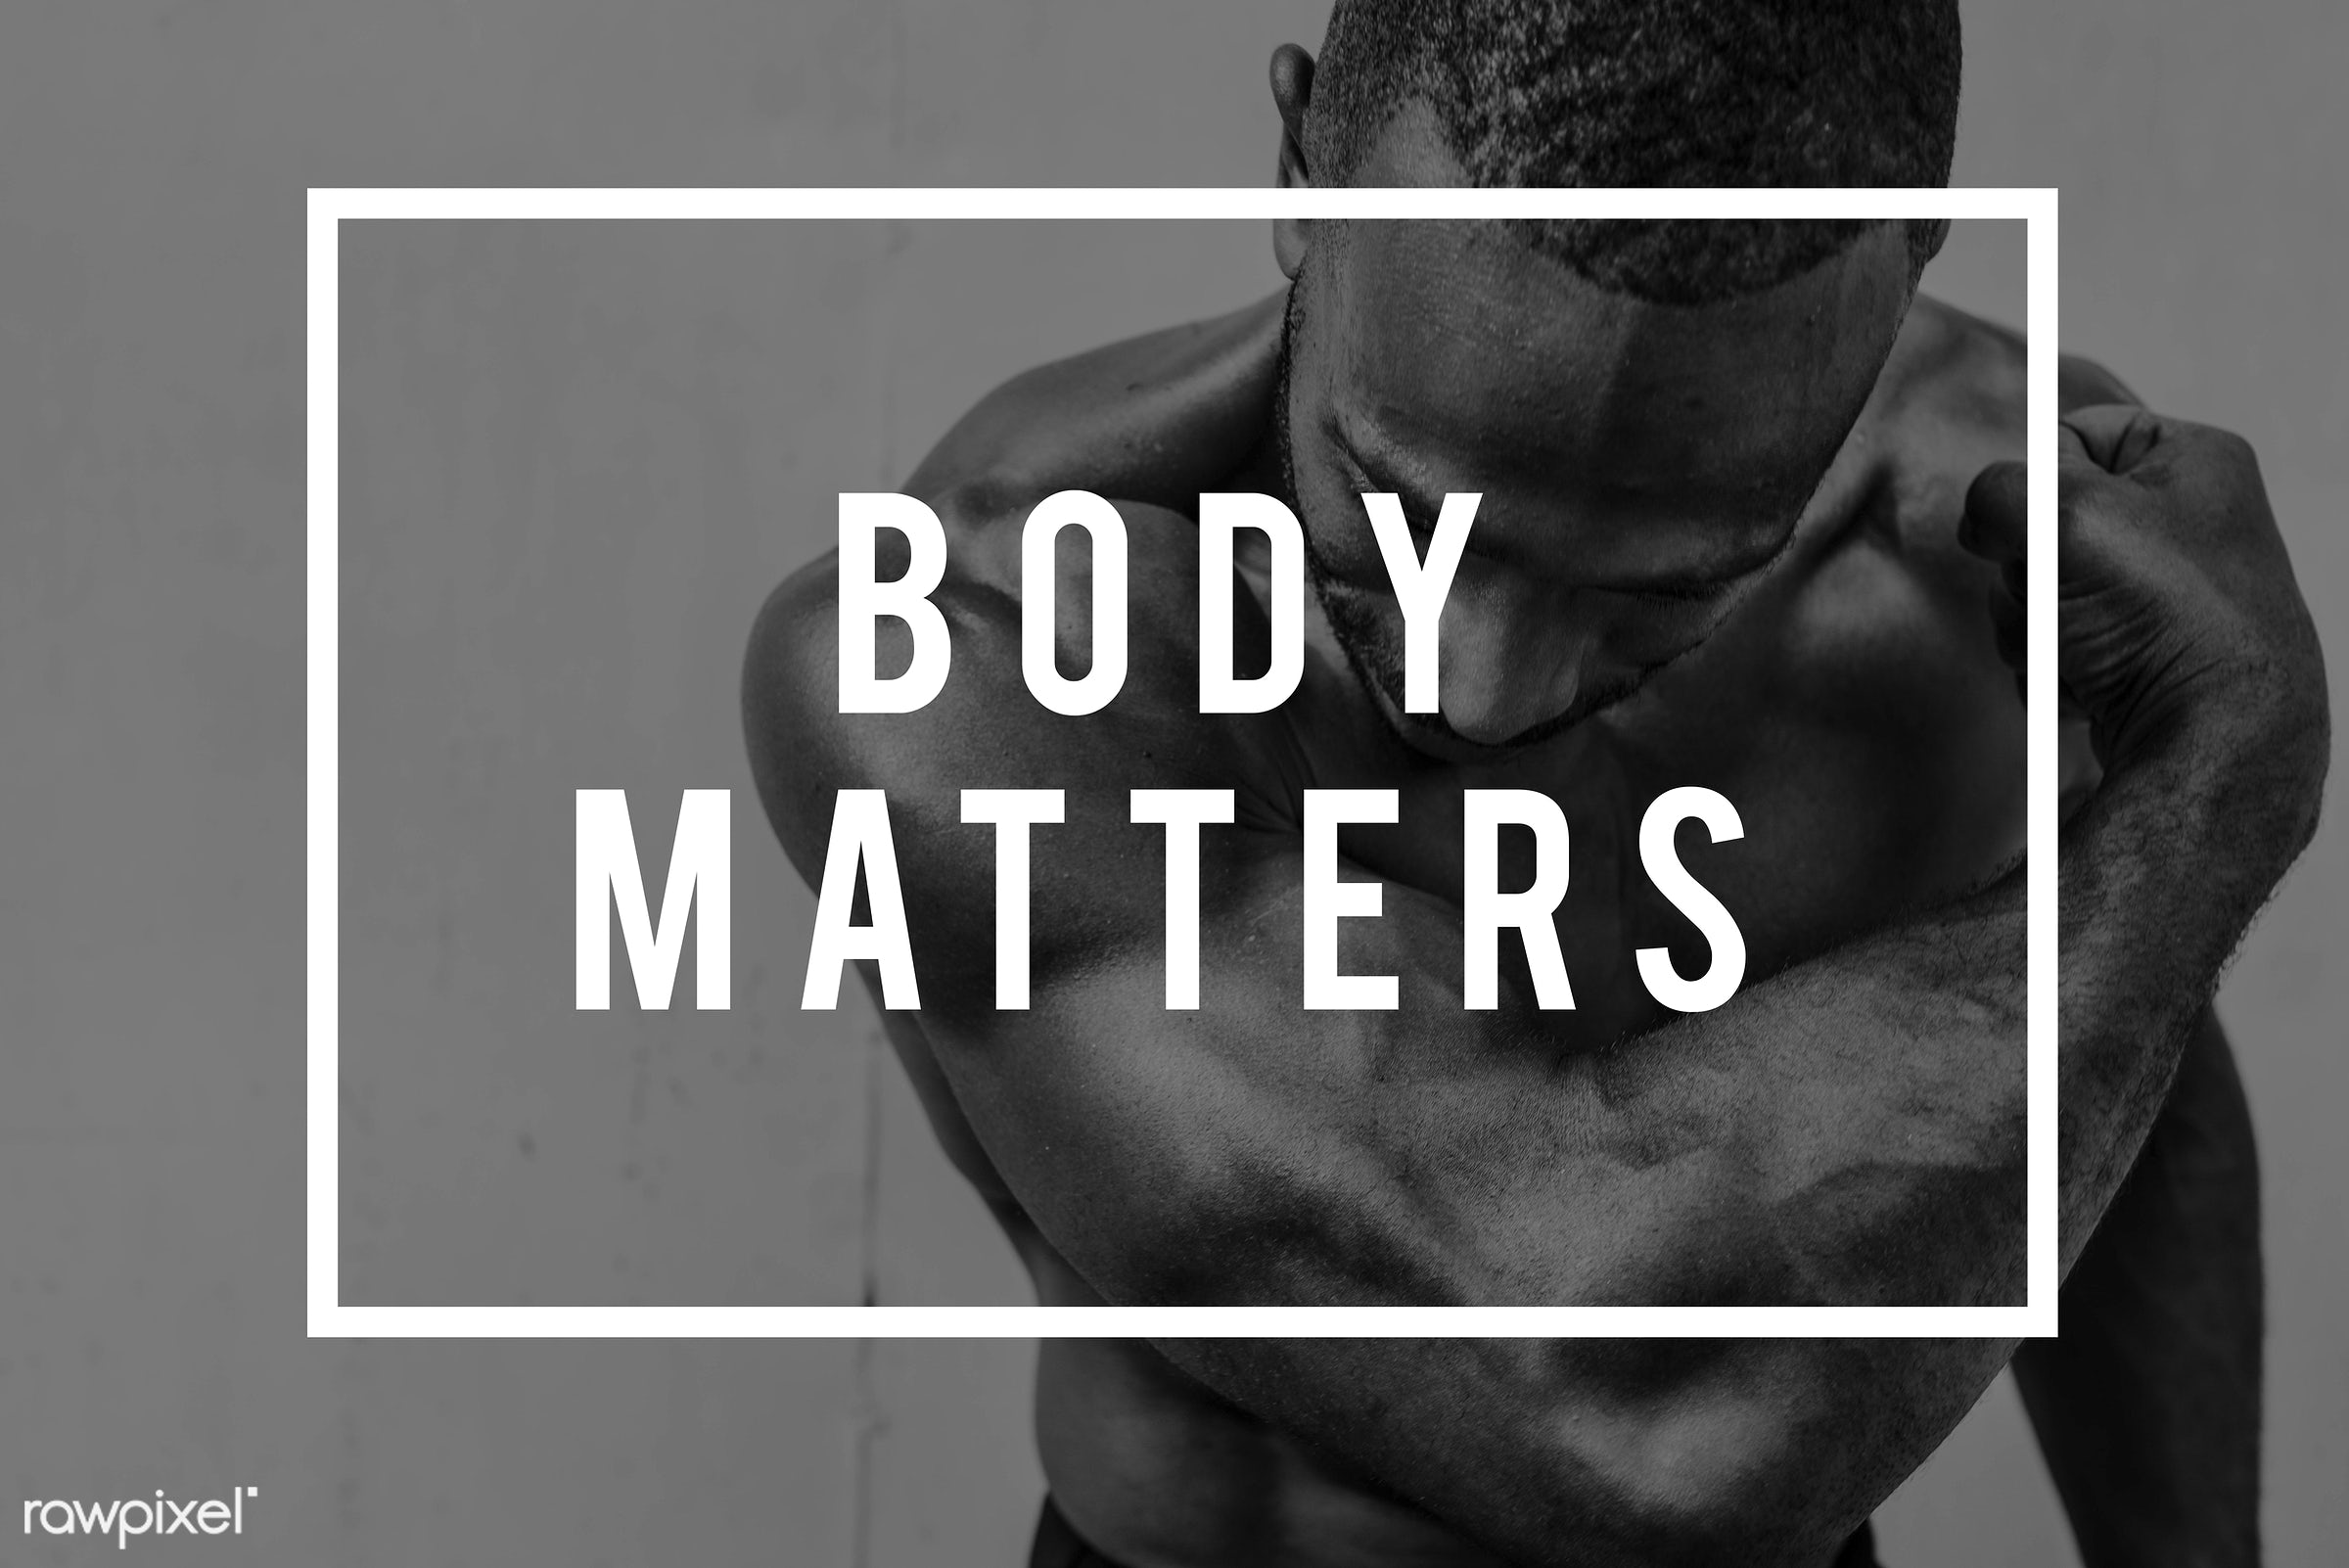 abs, adult, african descent, arms, be strong, biceps, body, body challenge, body matters, bodybuilder, build a body, build...